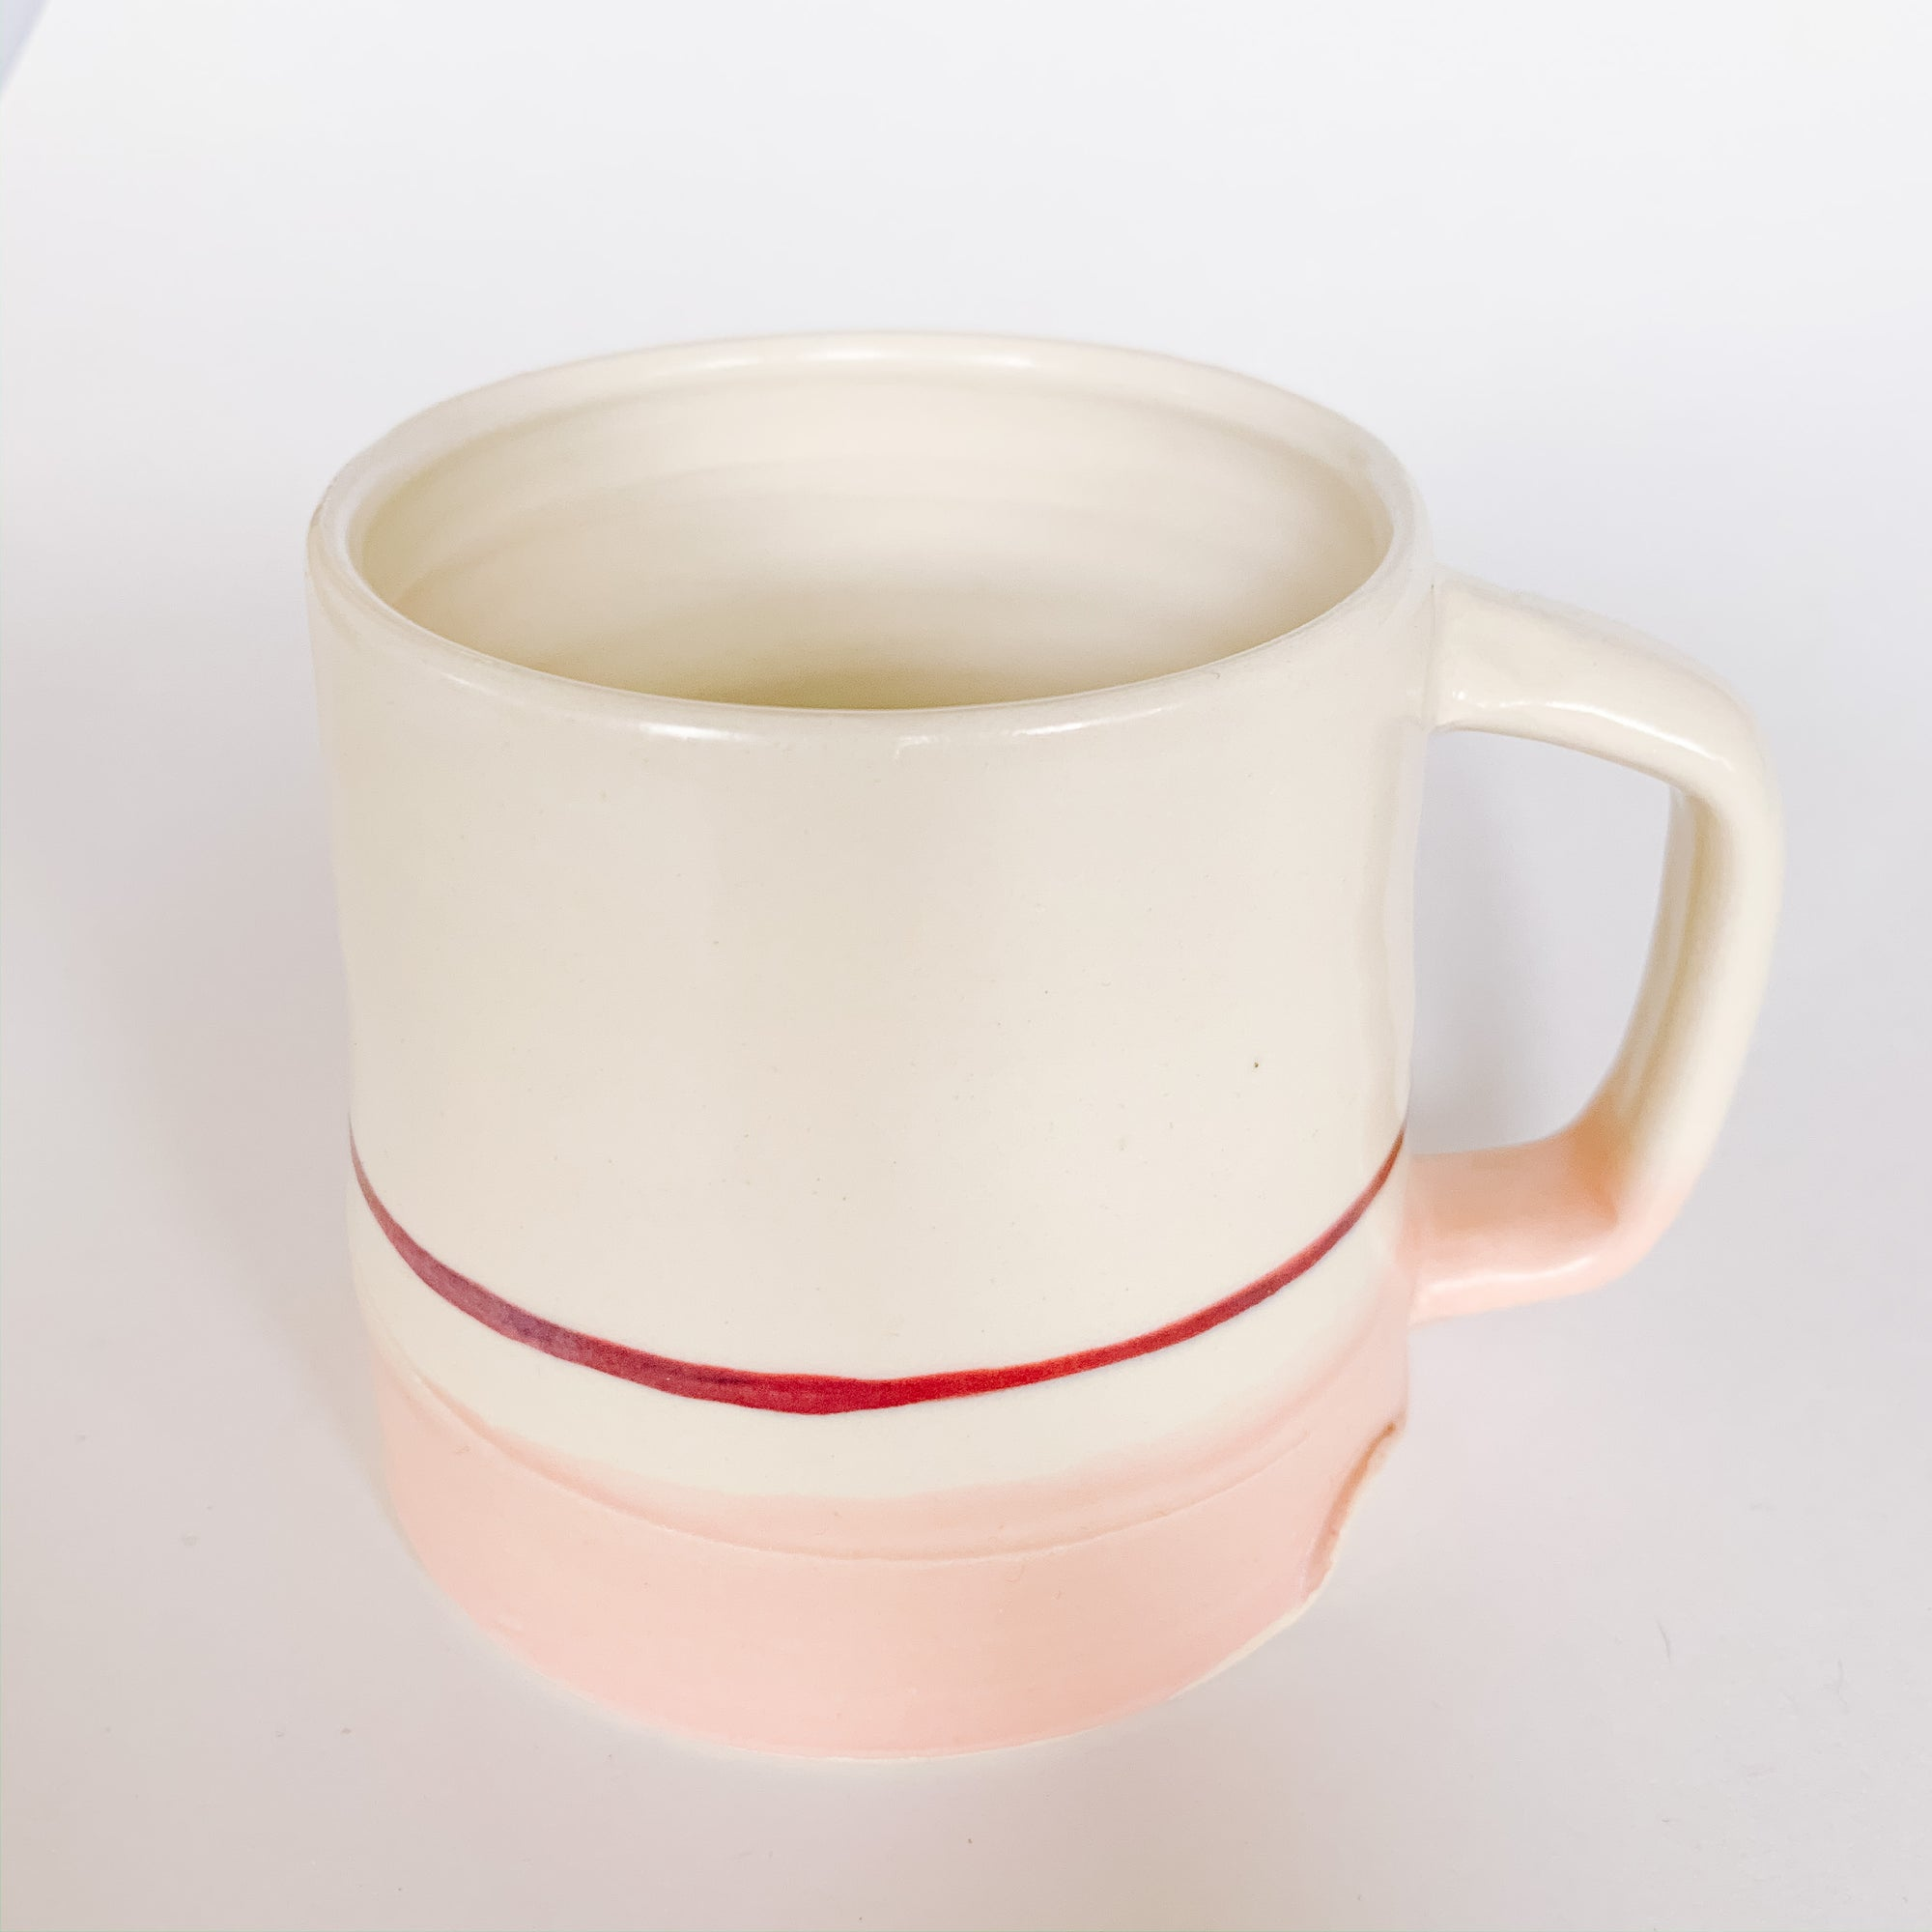 Pink Handcrafted Coffee Mug - Femme Wares Niagara Local Small Business